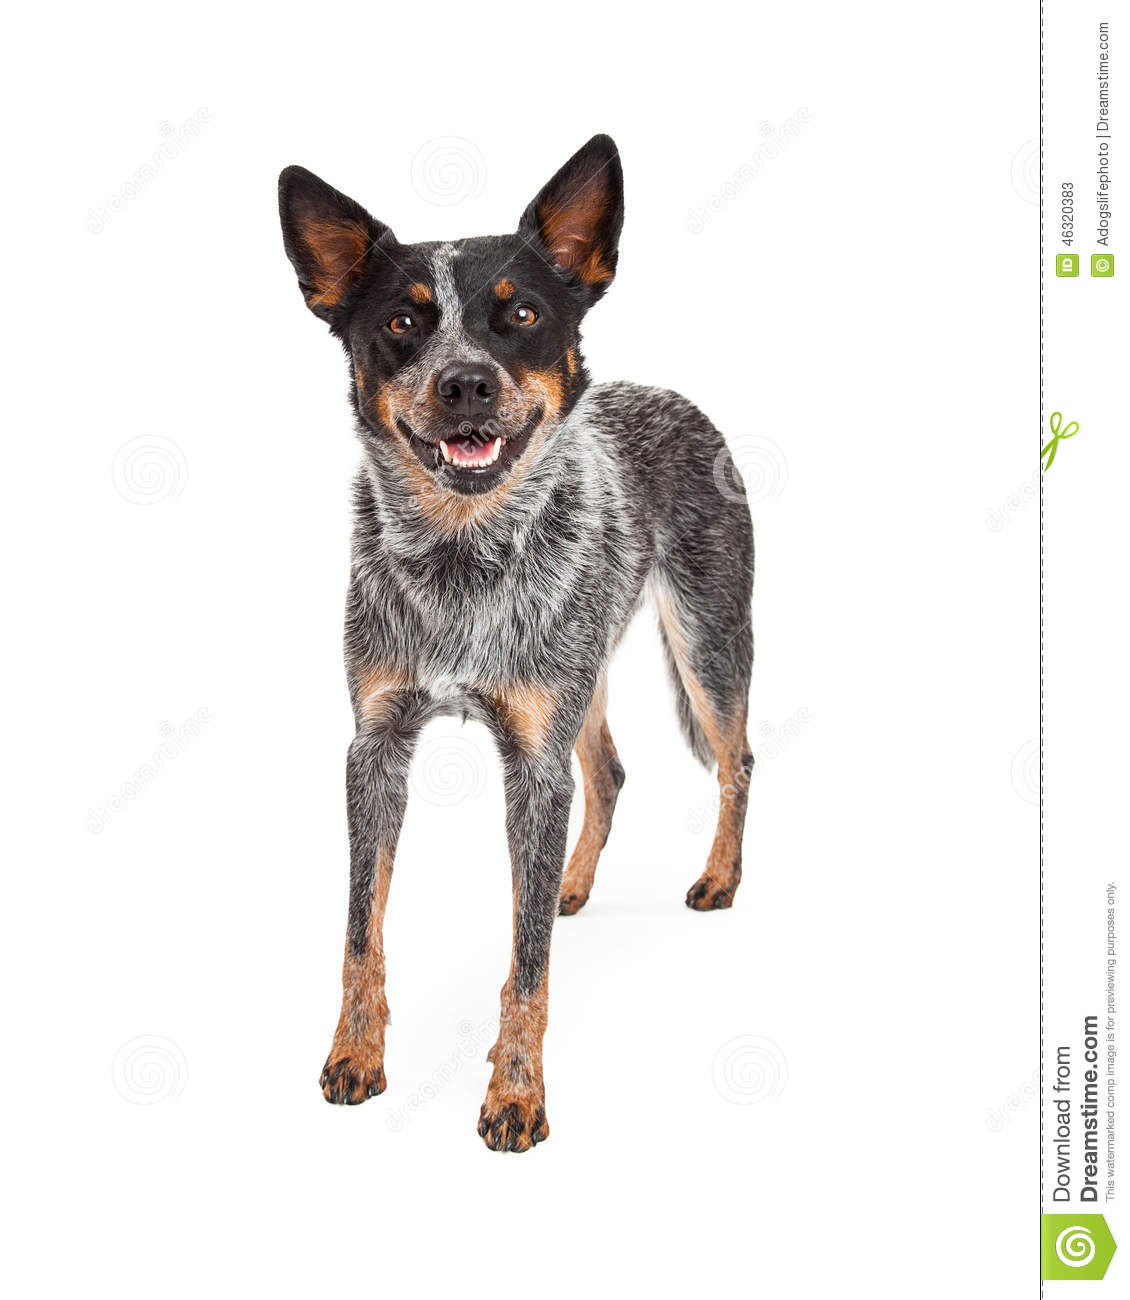 Australian stumpy tail cattle dog clipart jpg library download Australian cattle dog clipart - ClipartFest jpg library download